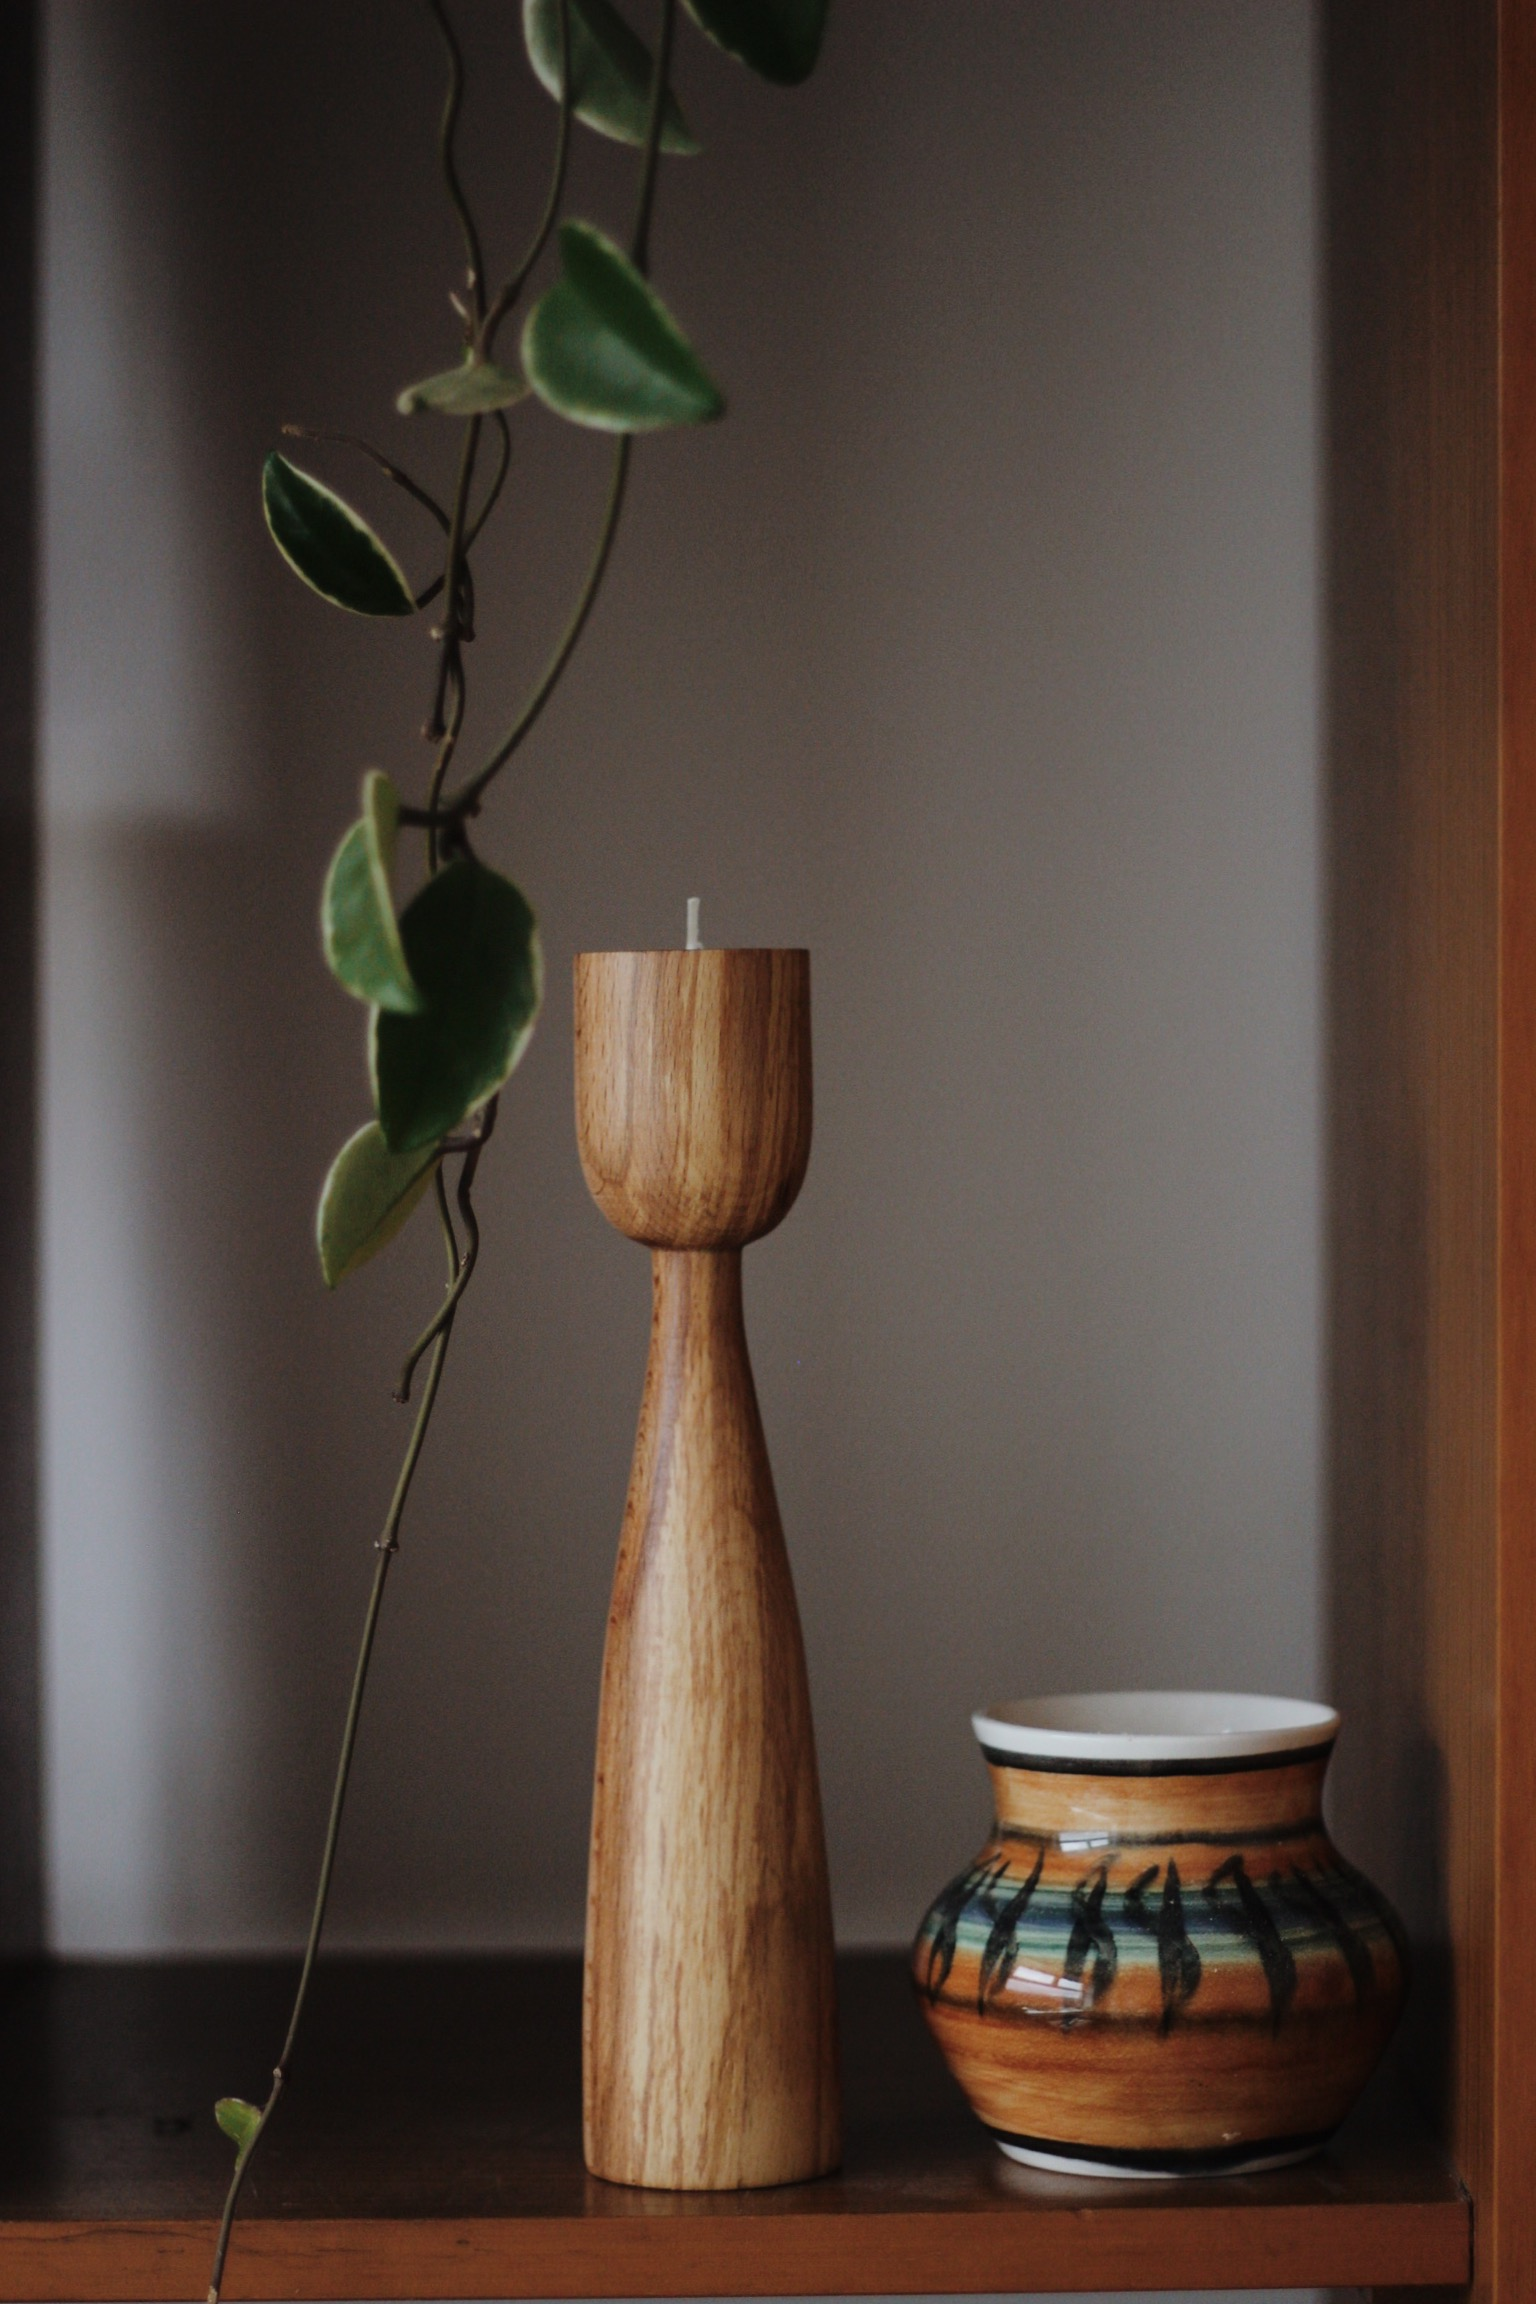 Candlestick and pot on shelf, Mid-Century Modern interiors